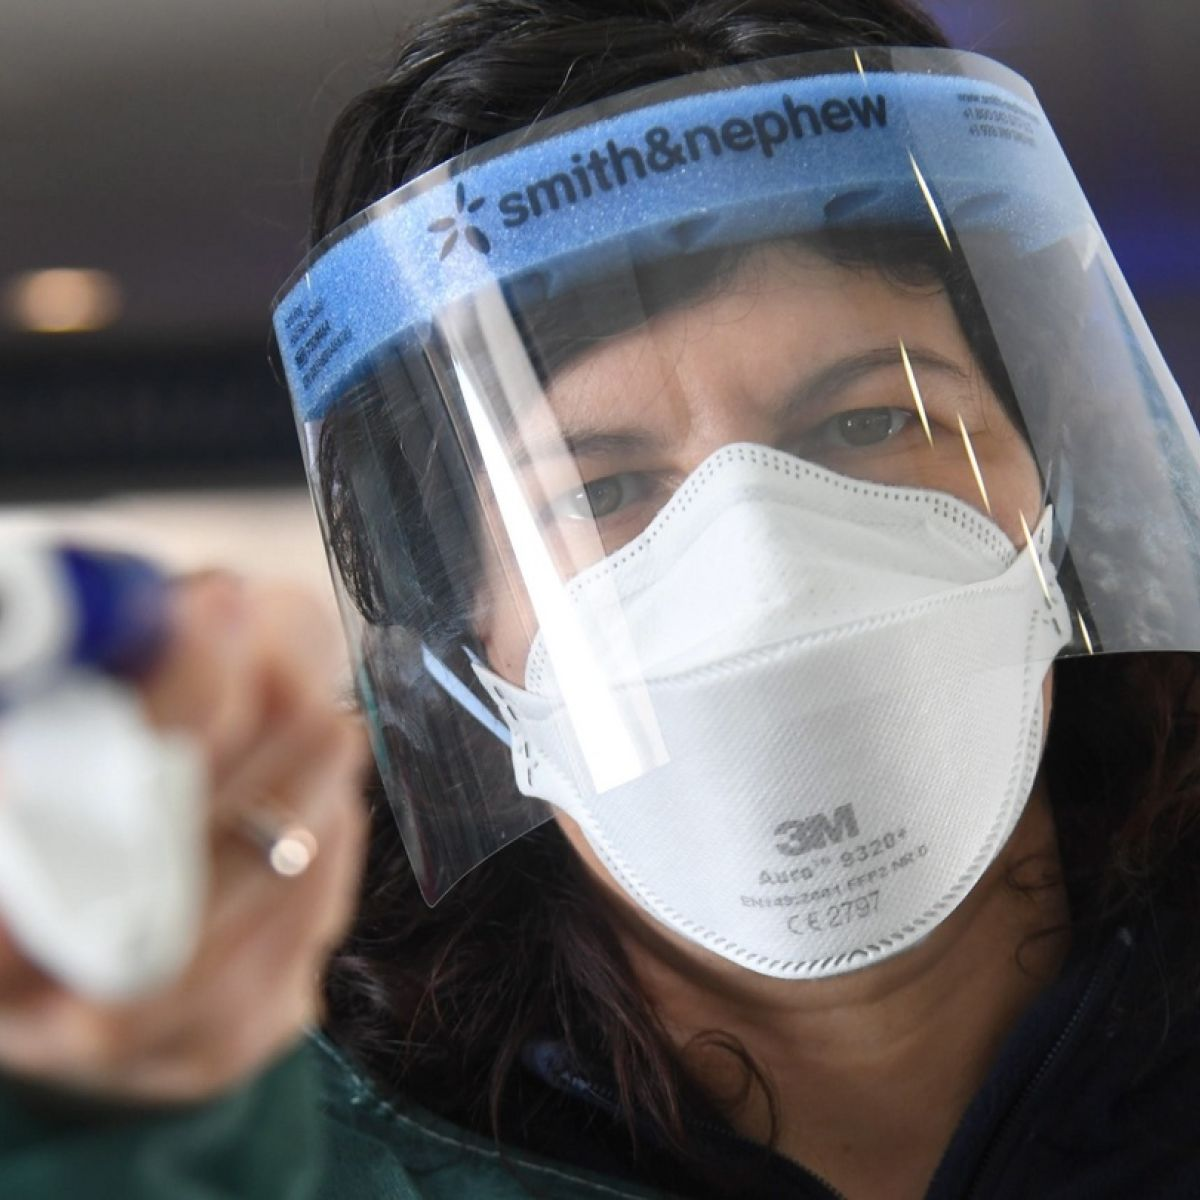 Should You Wear a Face Mask during the COVID-19 Pandemic?